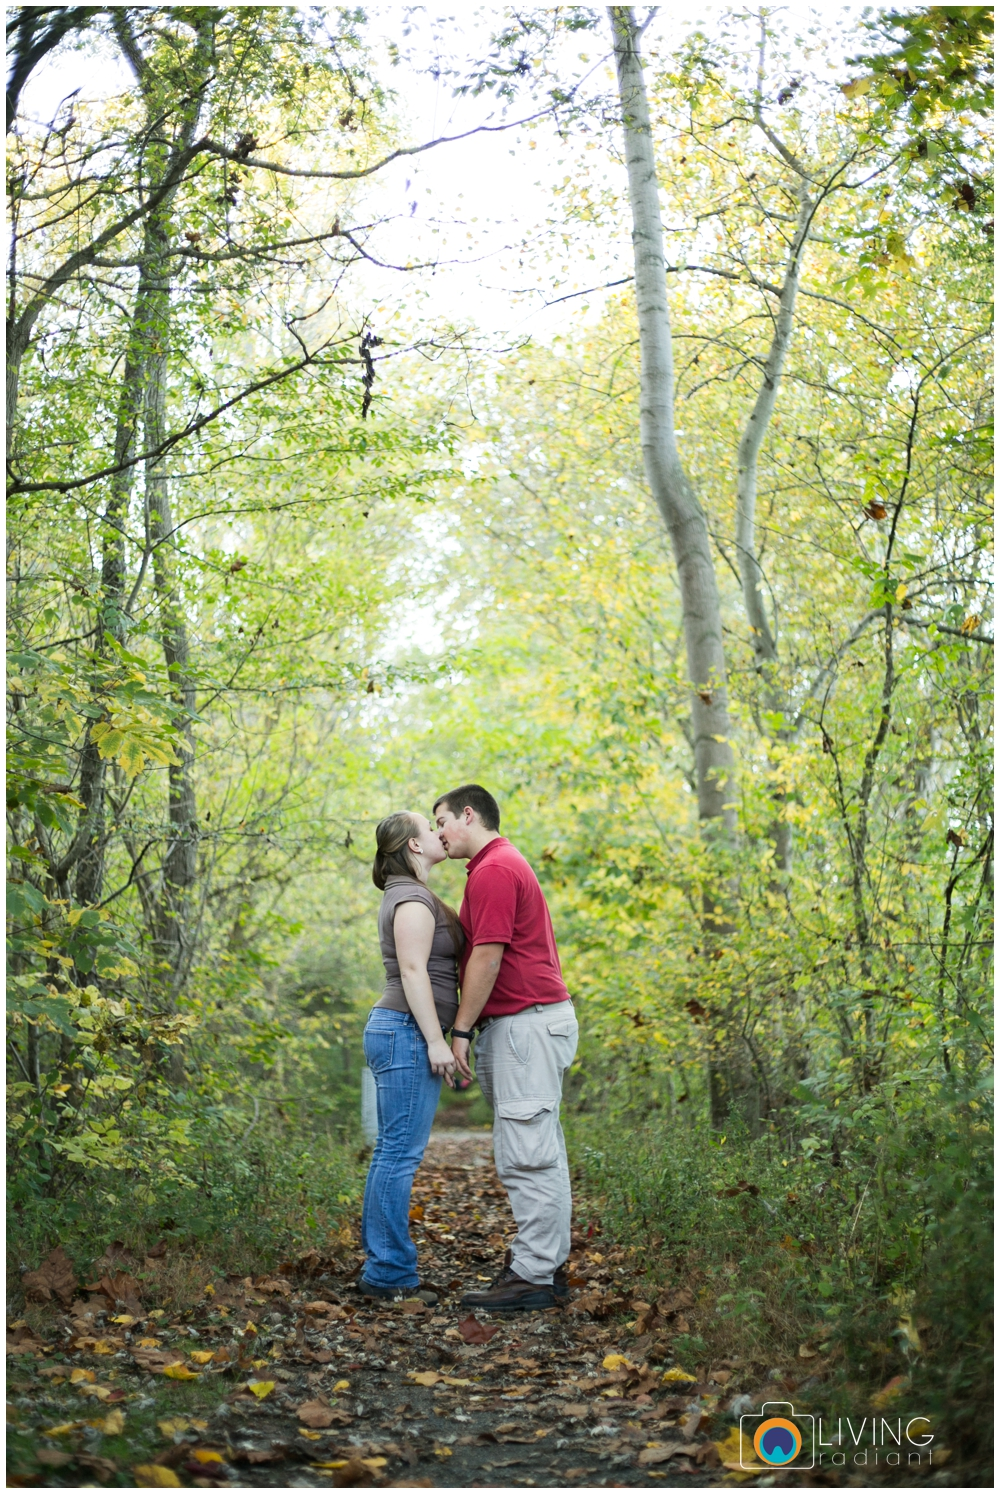 holley-ray-engaged-outdoor-engagement-session-woods-water-state-park-living-radiant-photography_0006.jpg